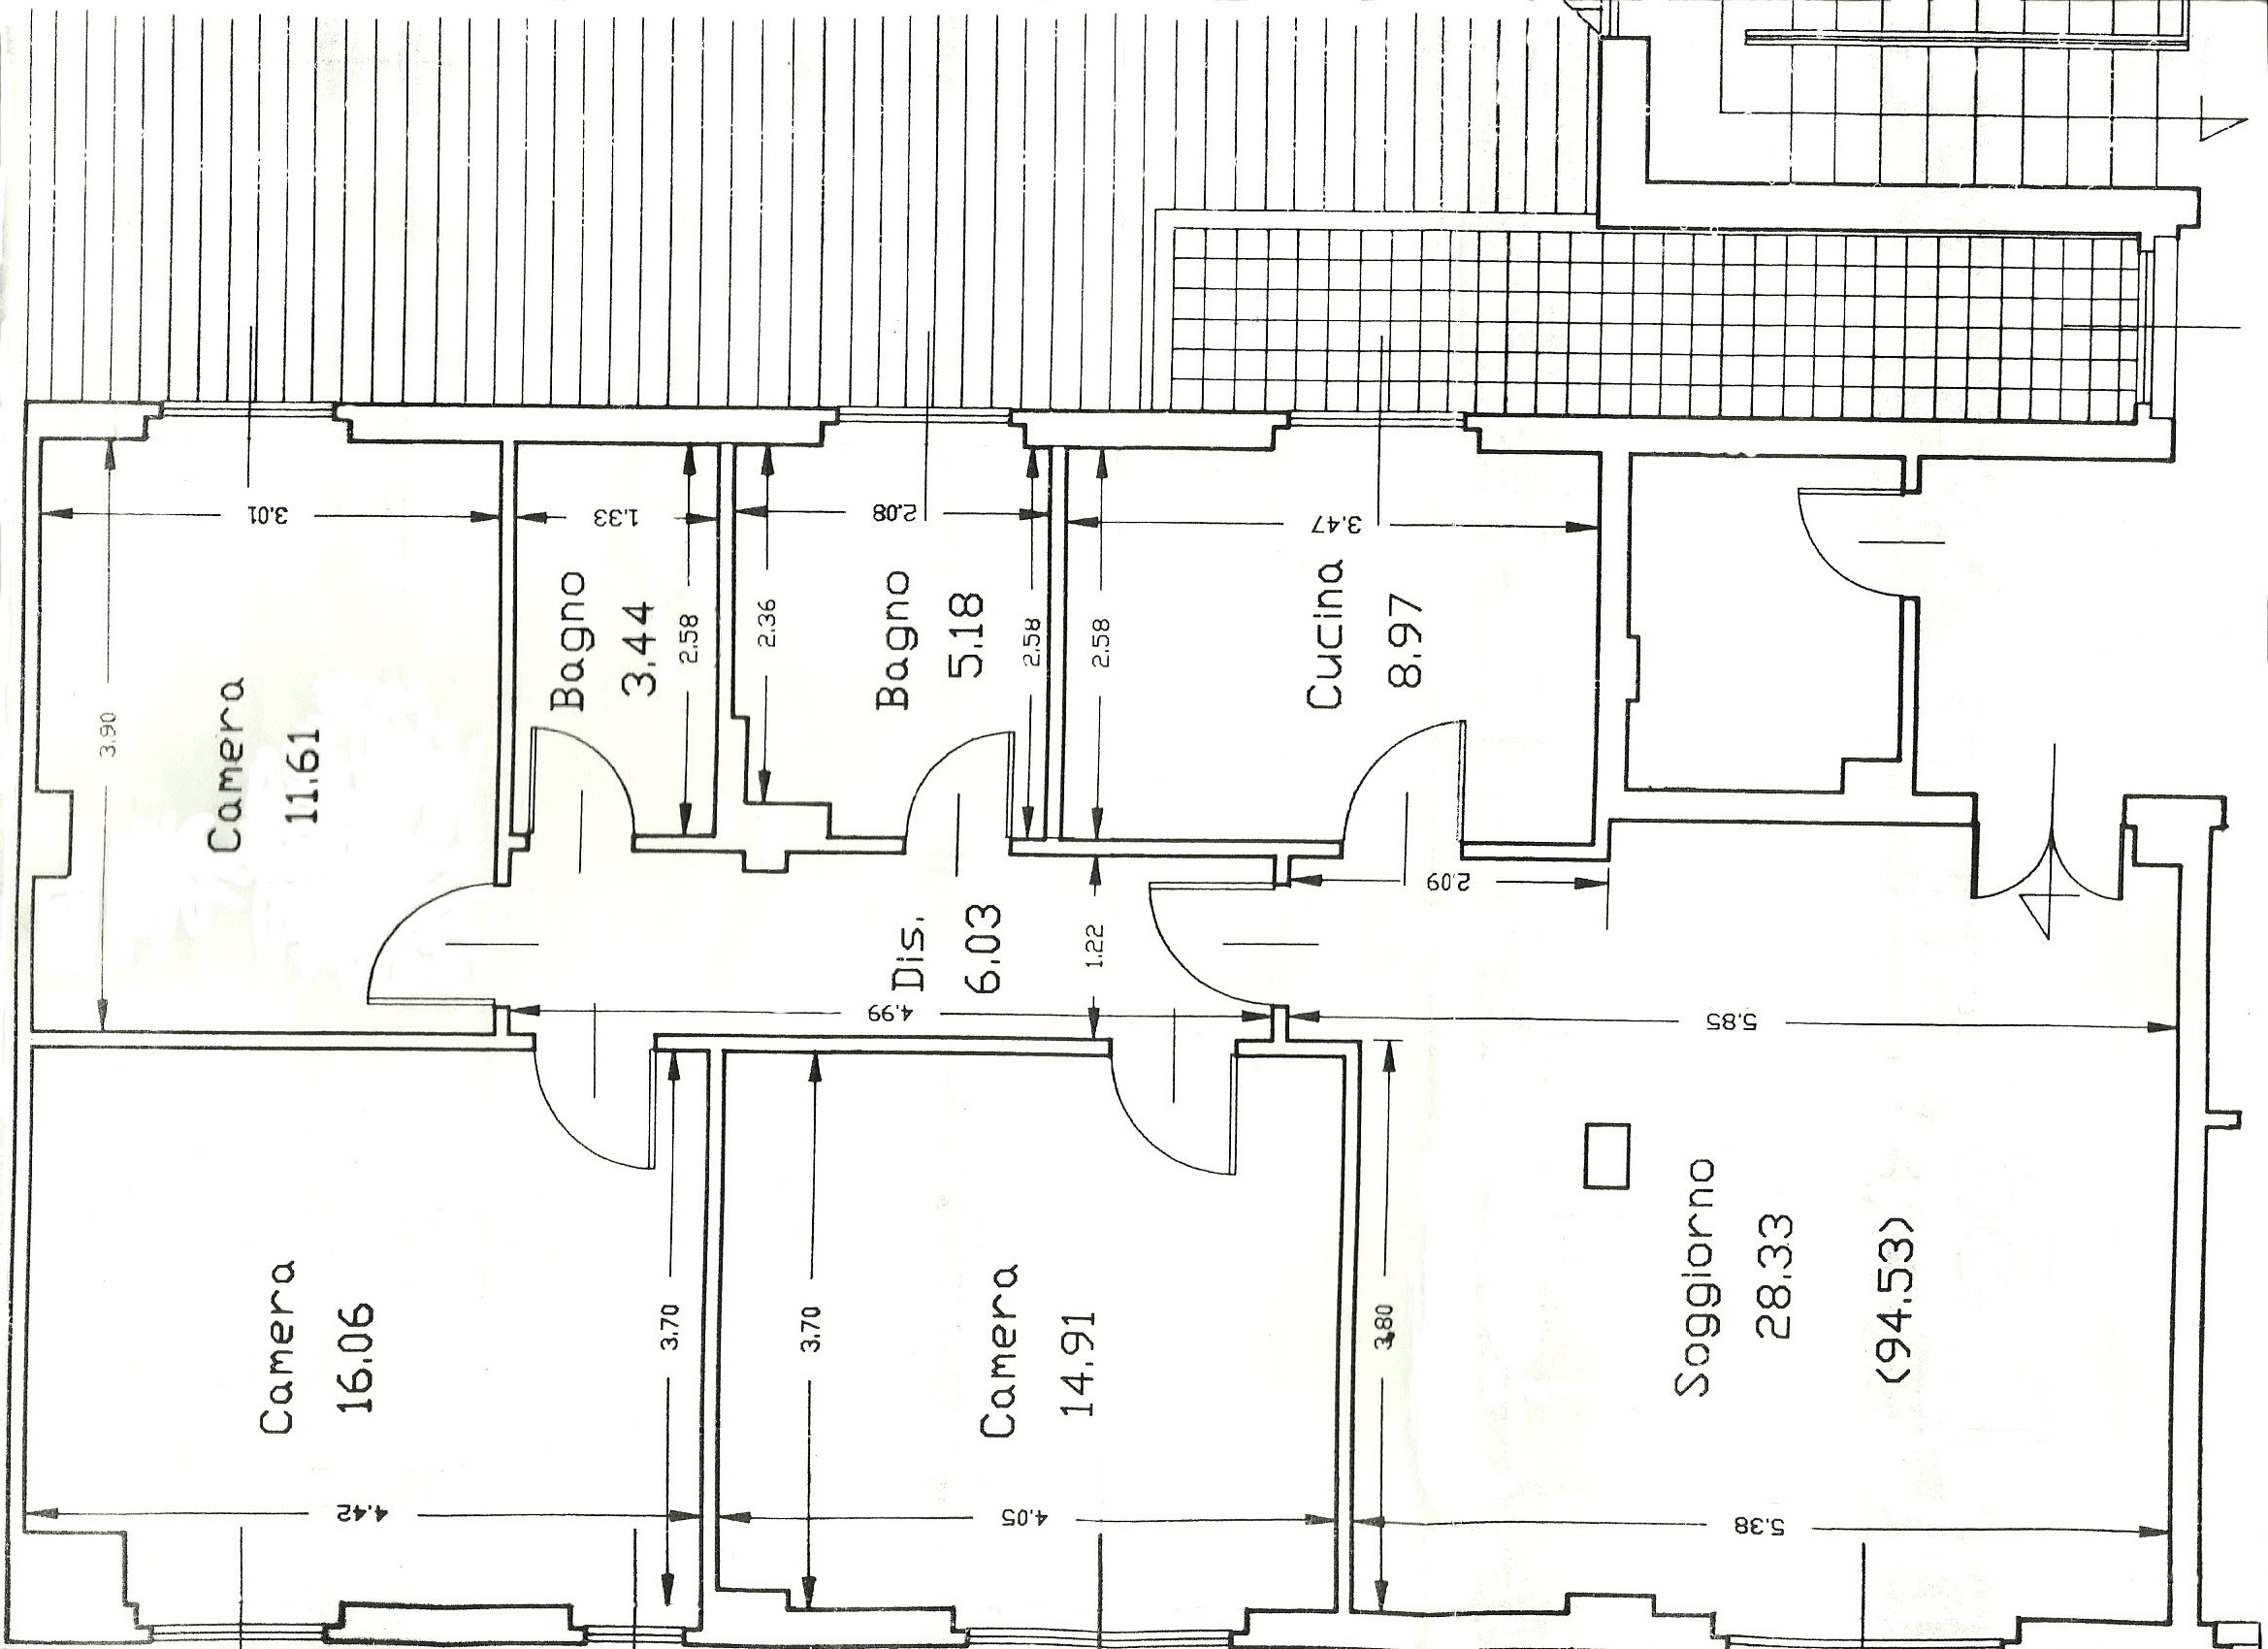 Apartment for sale, ref. R/561 (Plan 1/2)